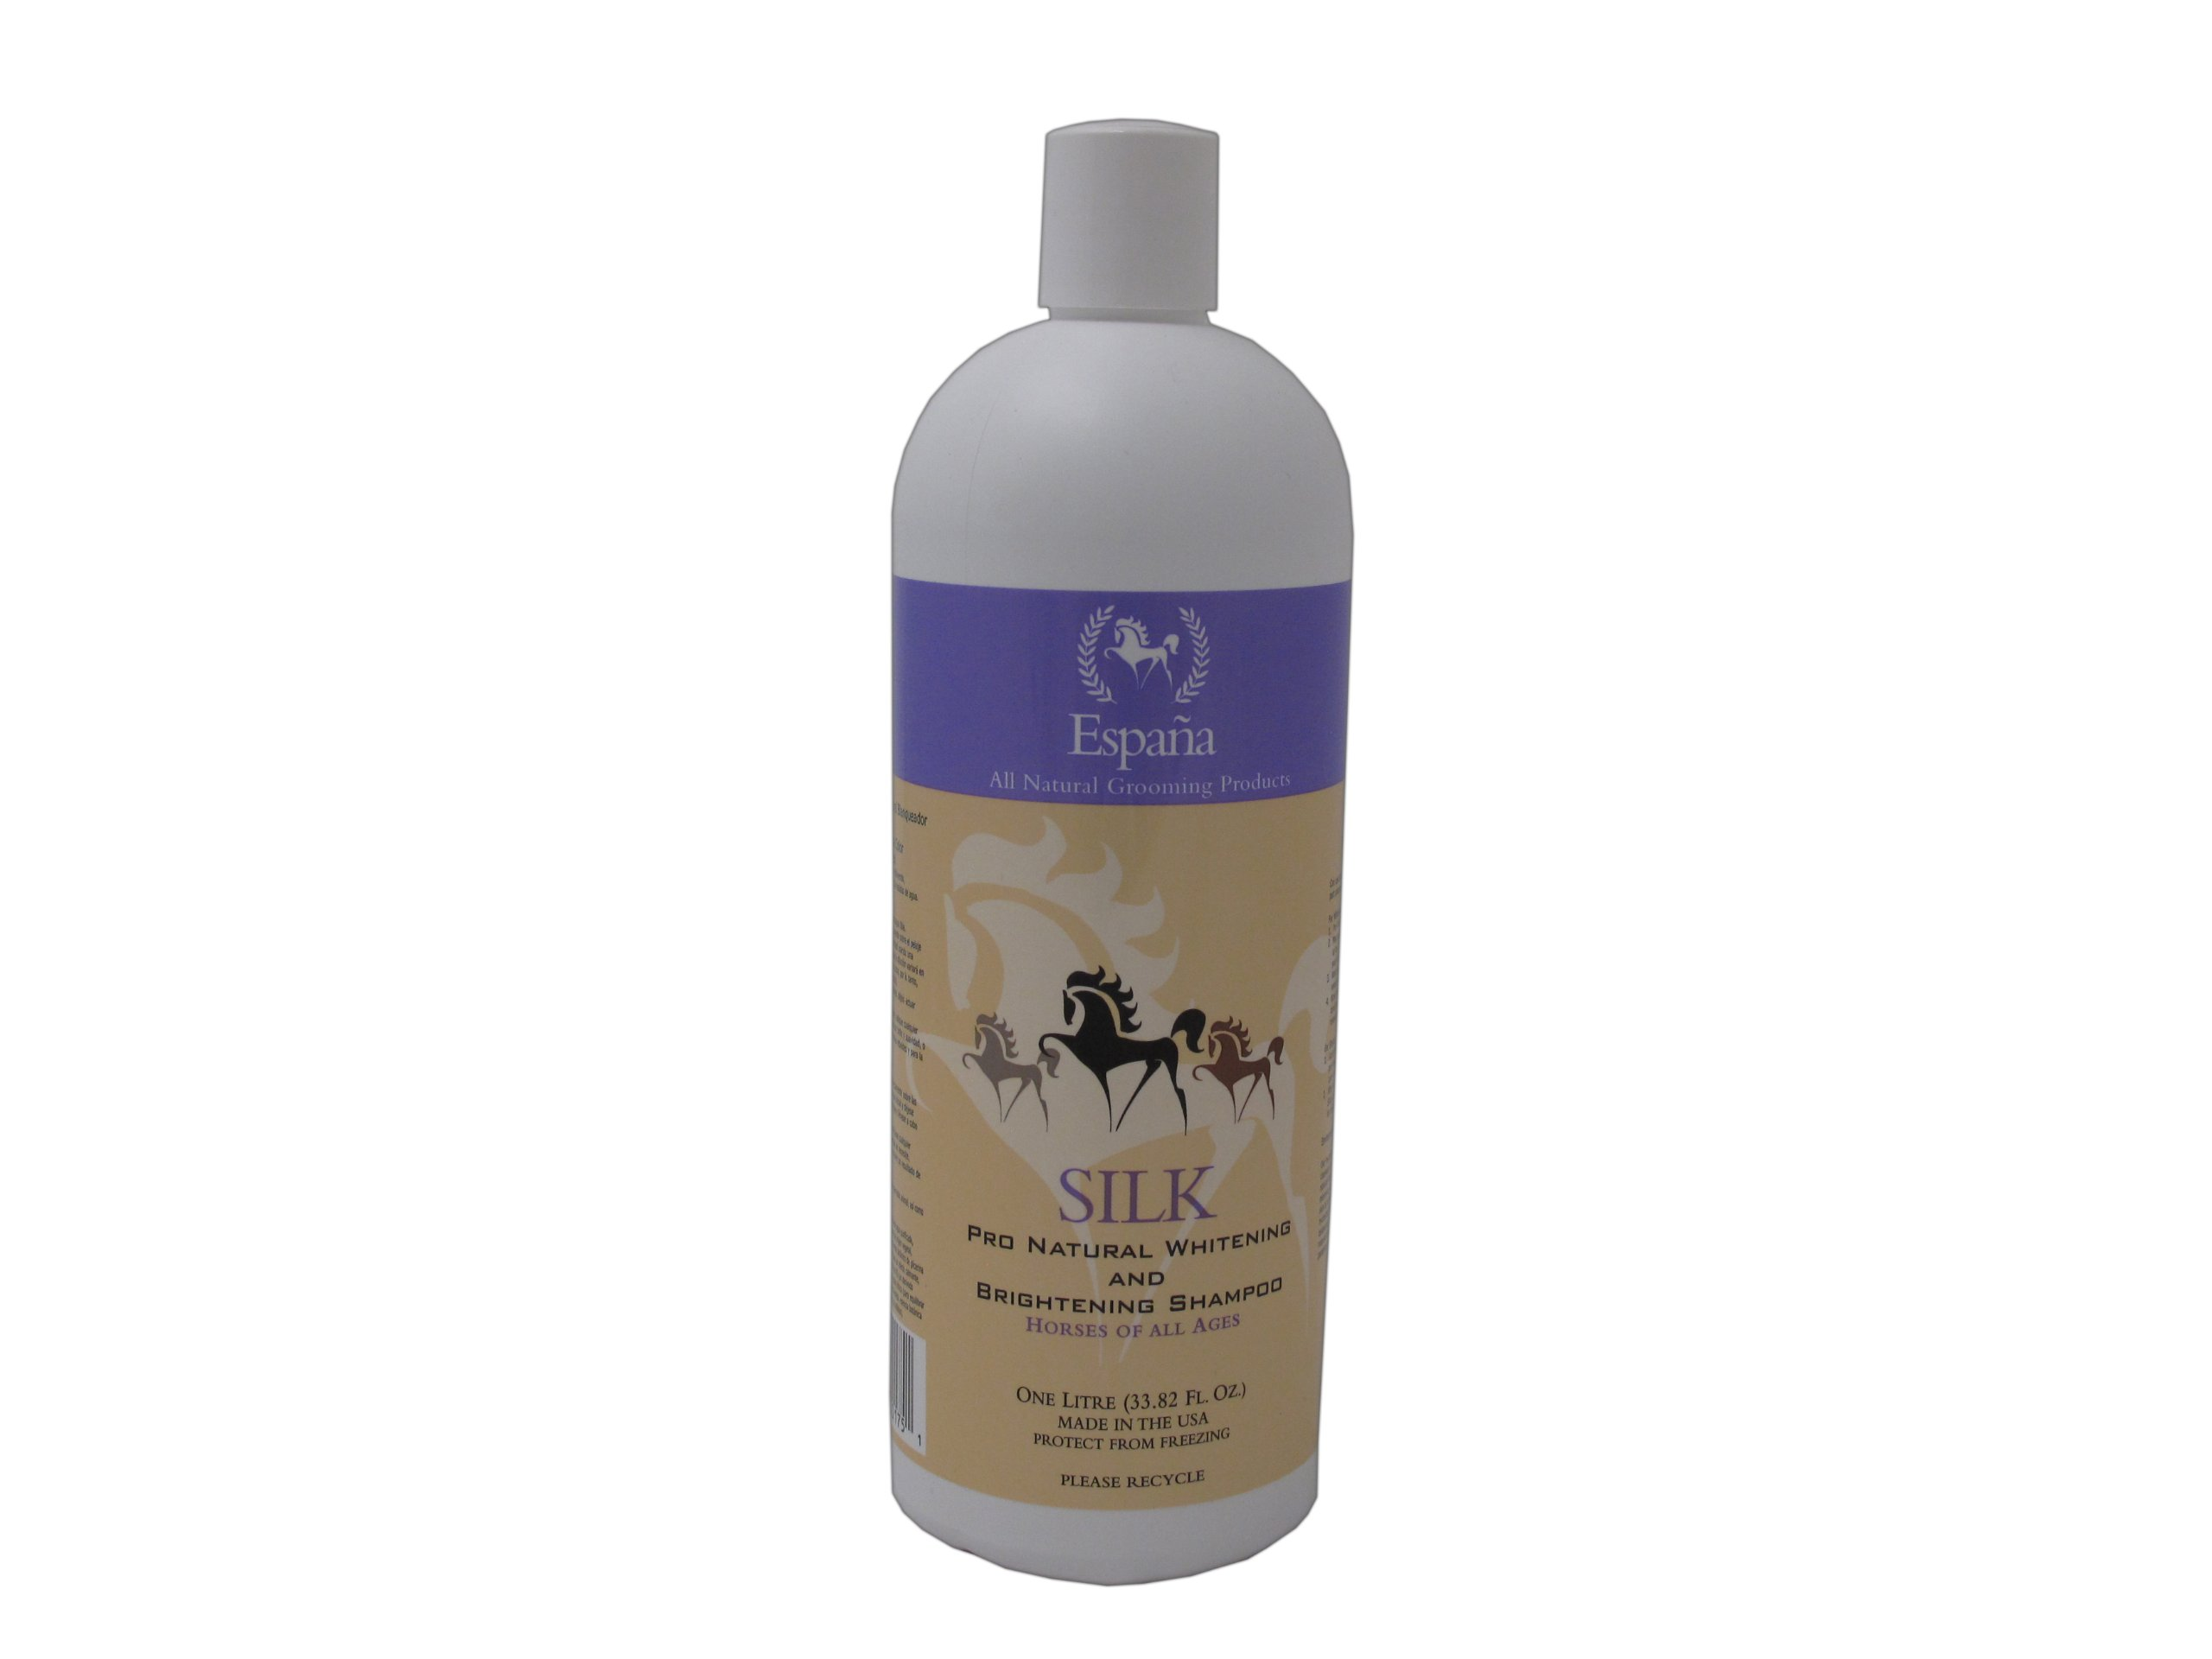 Espana Silk ESP0320E Specially Formulated Silk Pro Whitening and Brightening Shampoo for Horses, 33.82-Ounce